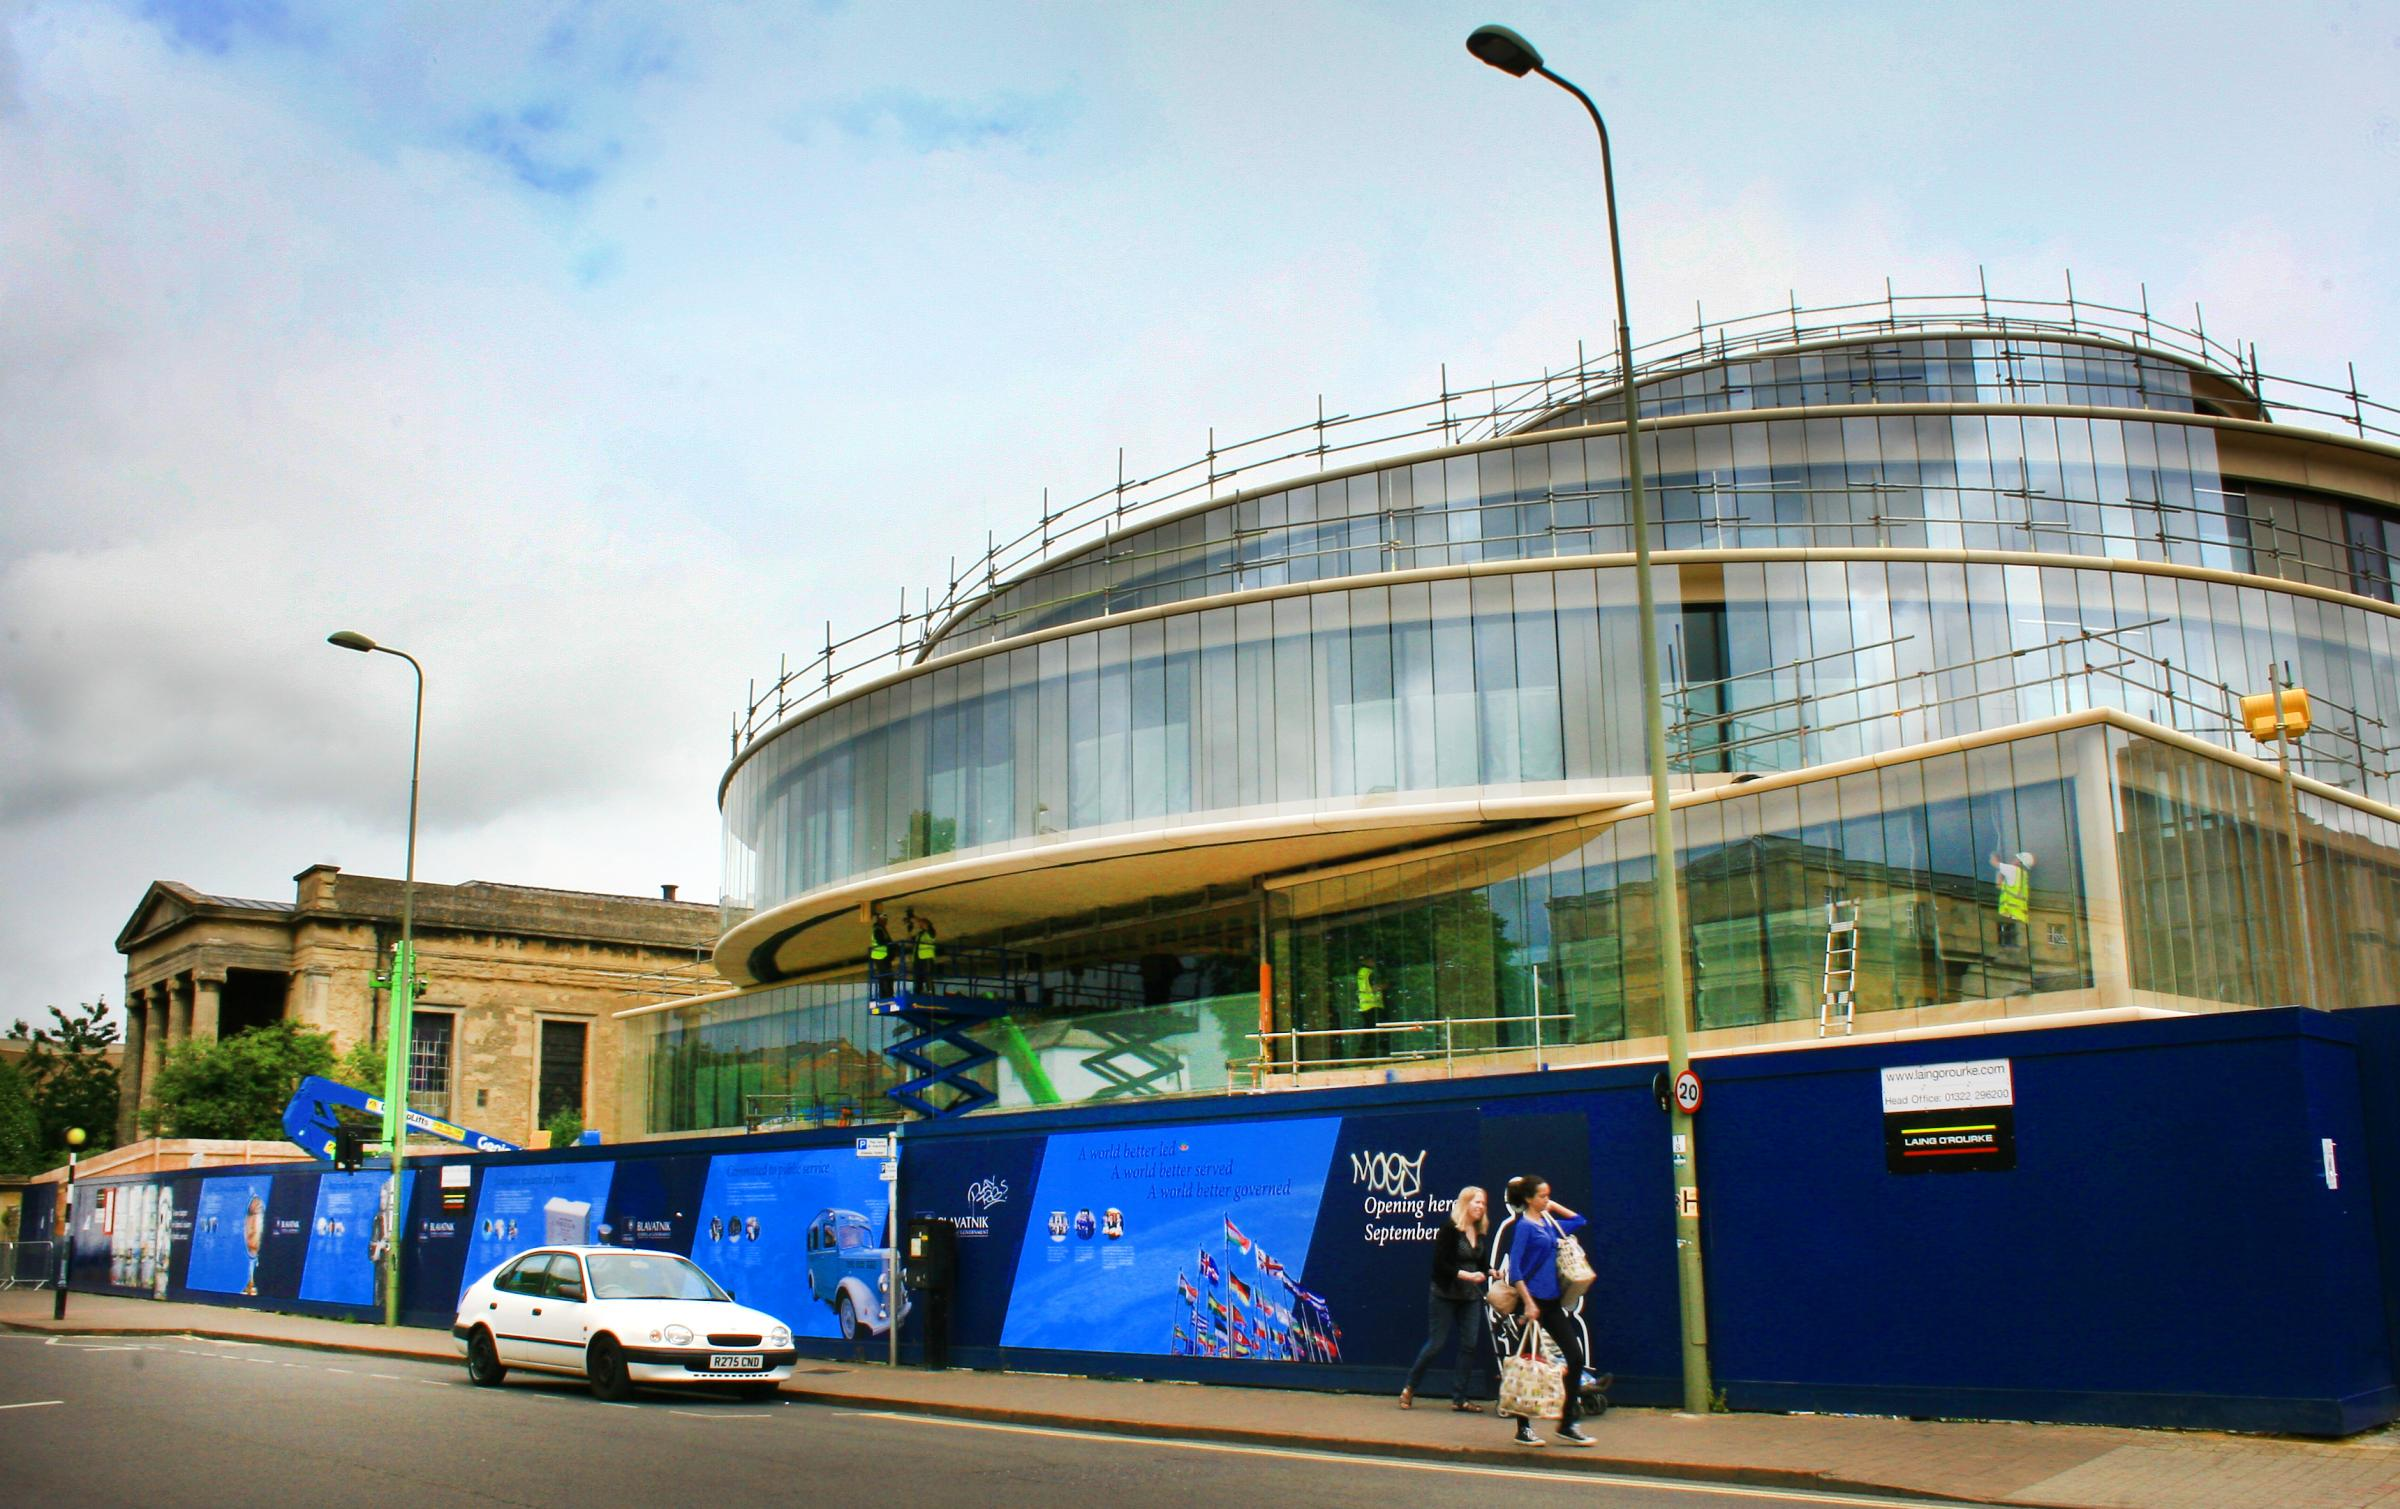 Taking shape: The Blavatnik School of Government